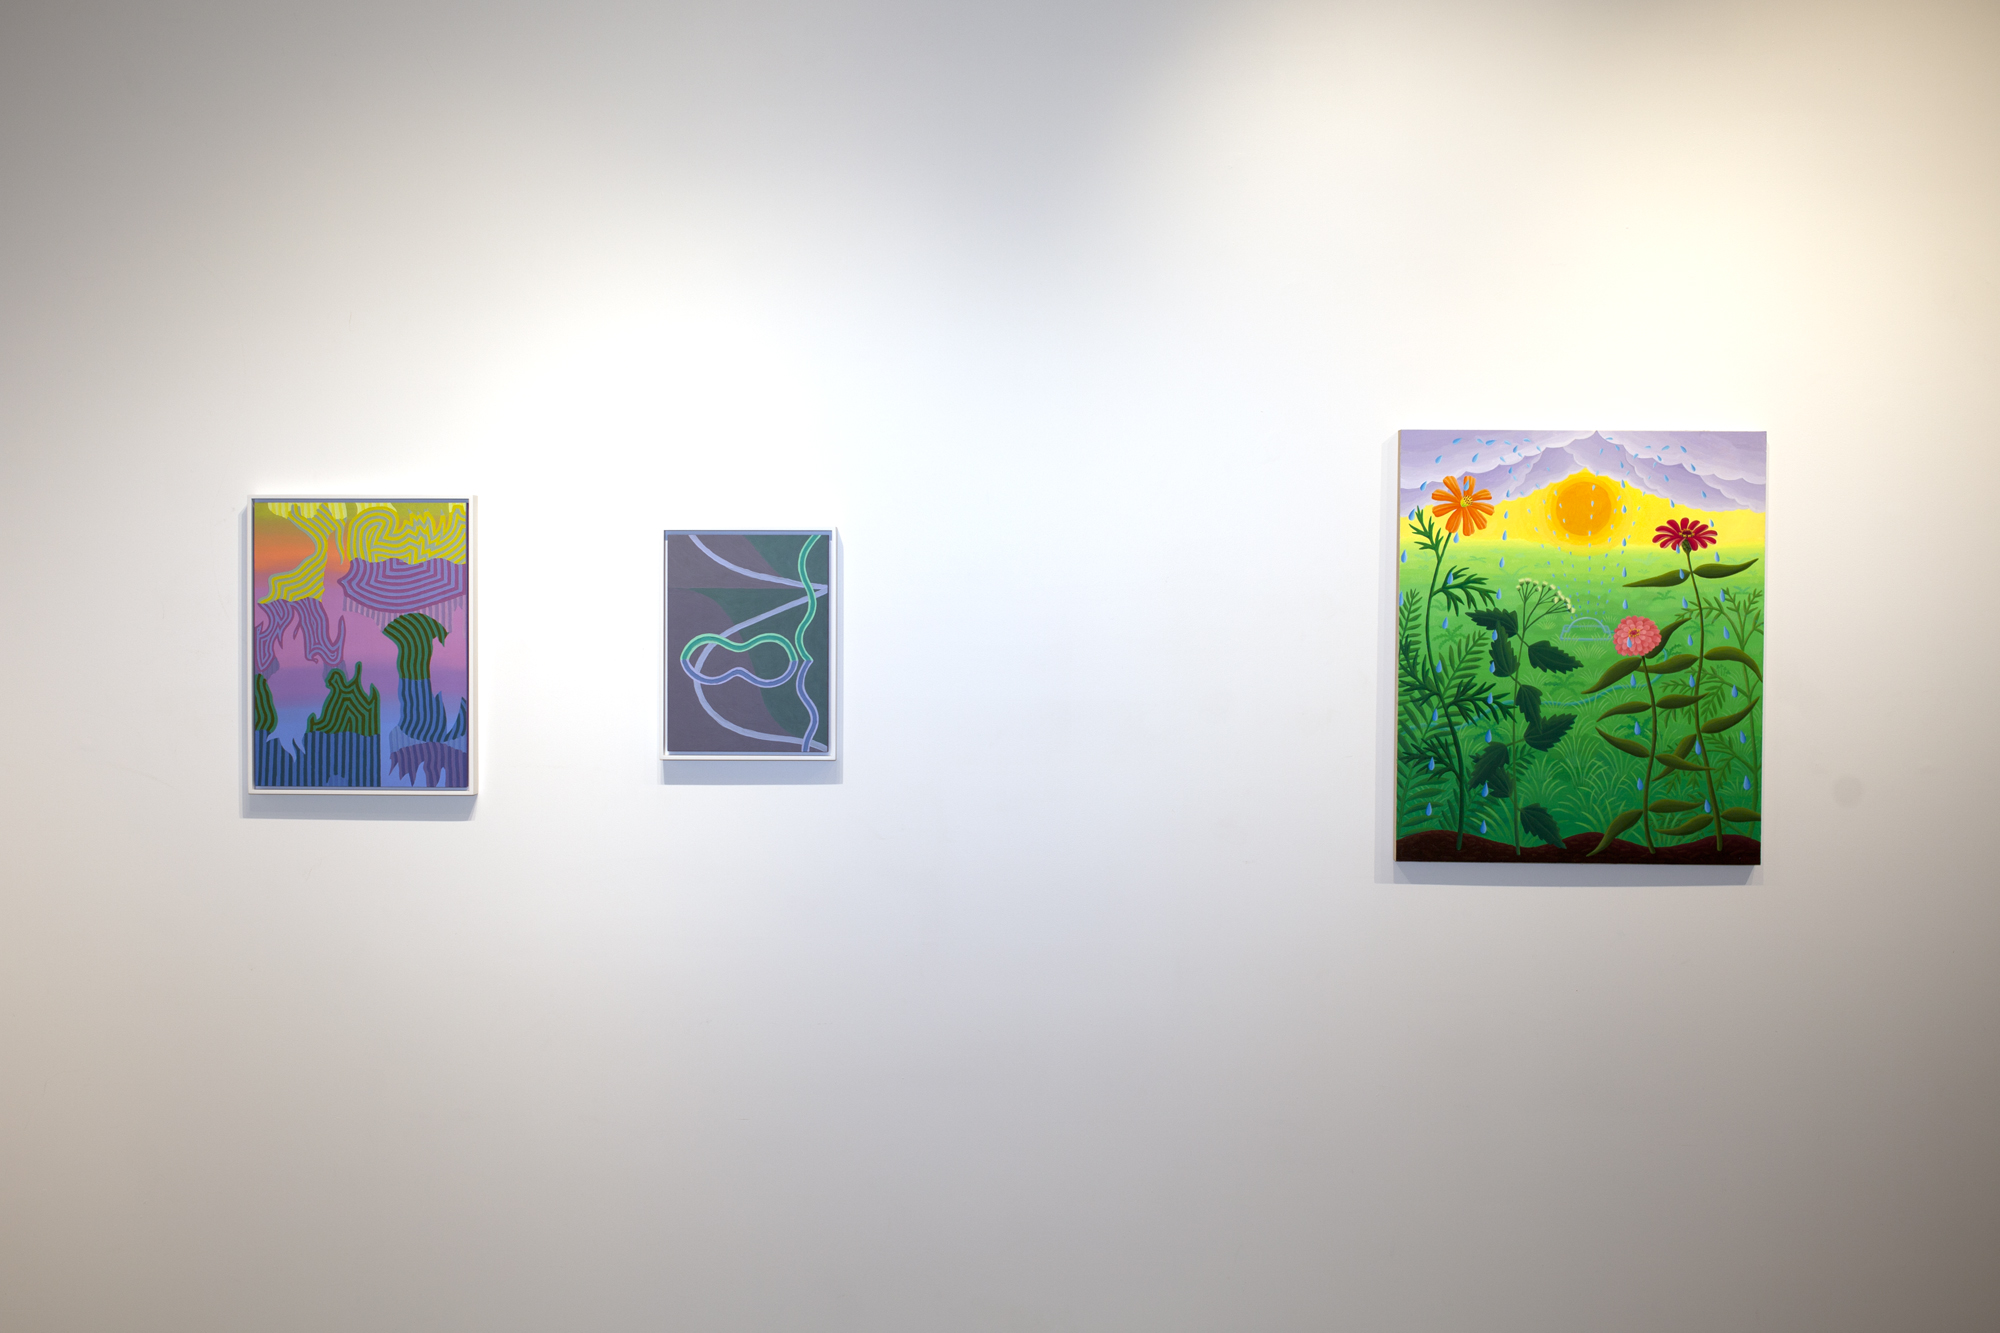 From left to right:  Caetlynn Booth,  Sunrise Study 2 , 2019, oil on paper, 17 x 13 inches framed Caetlynn Booth,  Synchronized Mirror II , Study 1, 2018, oil on paper, 13 x 10 inches framed Amy Lincoln,  Sprinkler with Wildflowers , 2018, acrylic on panel, 24 x 20 inches